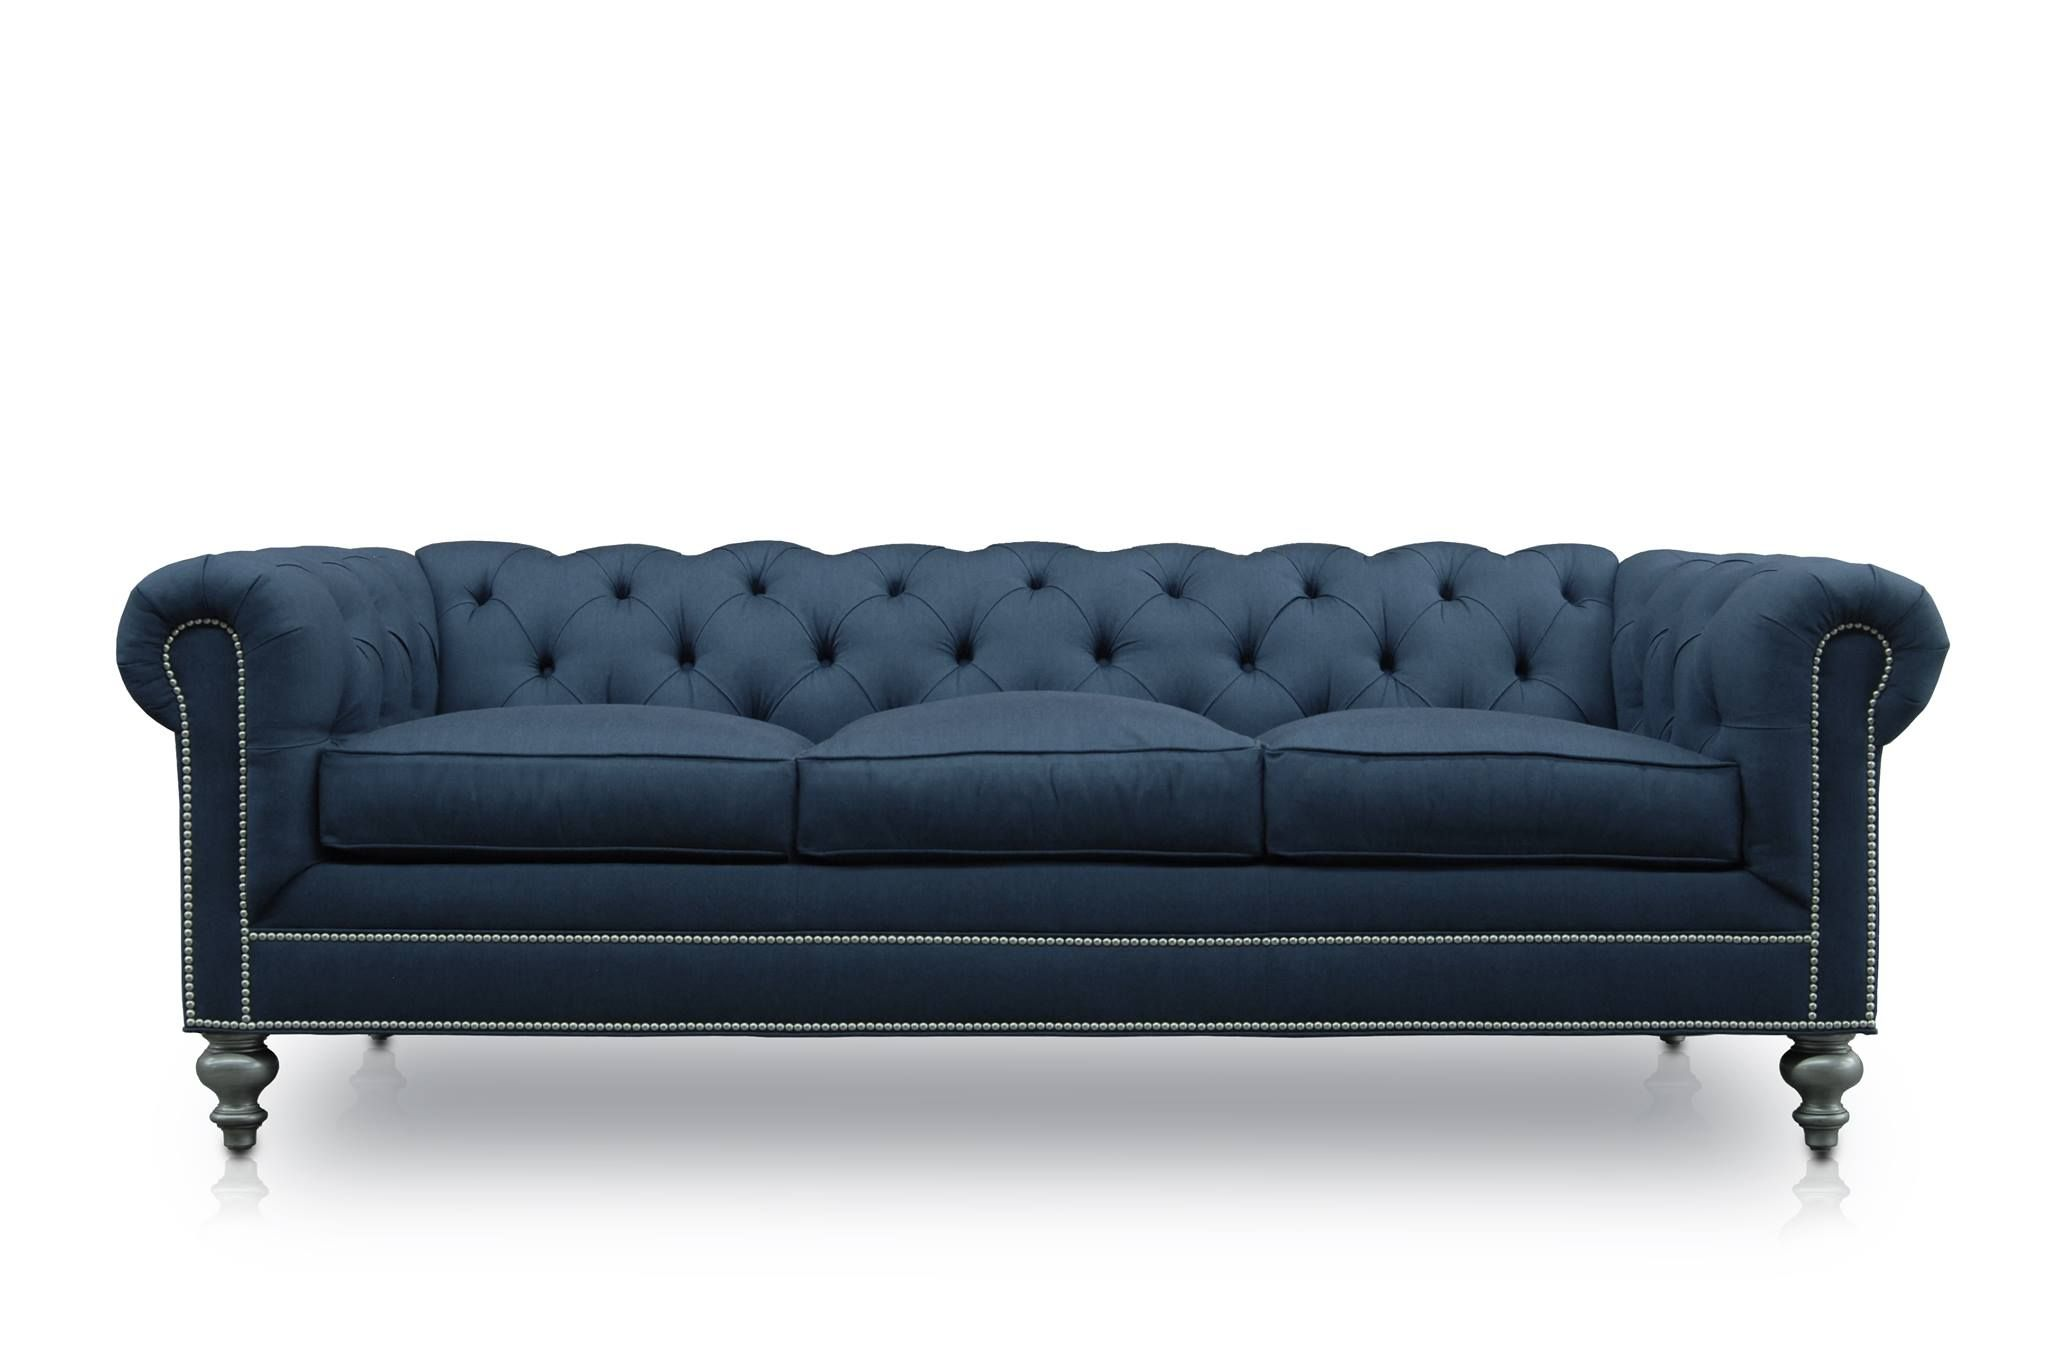 The Fitzgerald Custom Classic Chesterfield Sofas More Of Iron Oak Classic Chesterfield Sofa Chesterfield Style Sofa Chesterfield Sofa